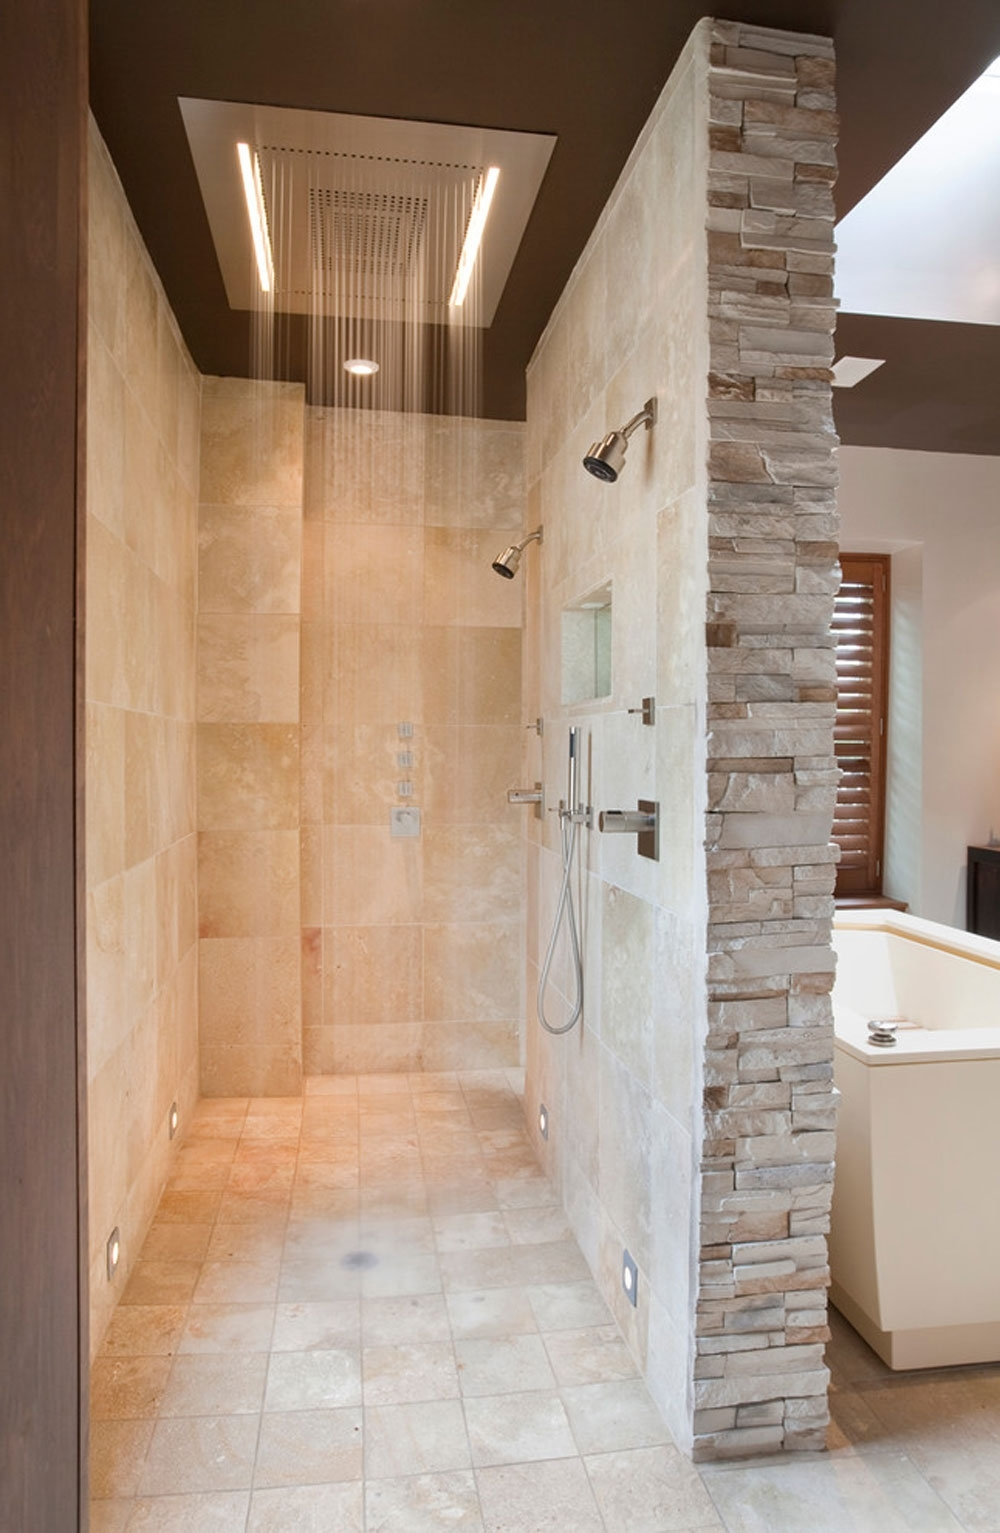 Shower Niche Ideas And Best Practices For Your Bathroom Bathroom Niche Design